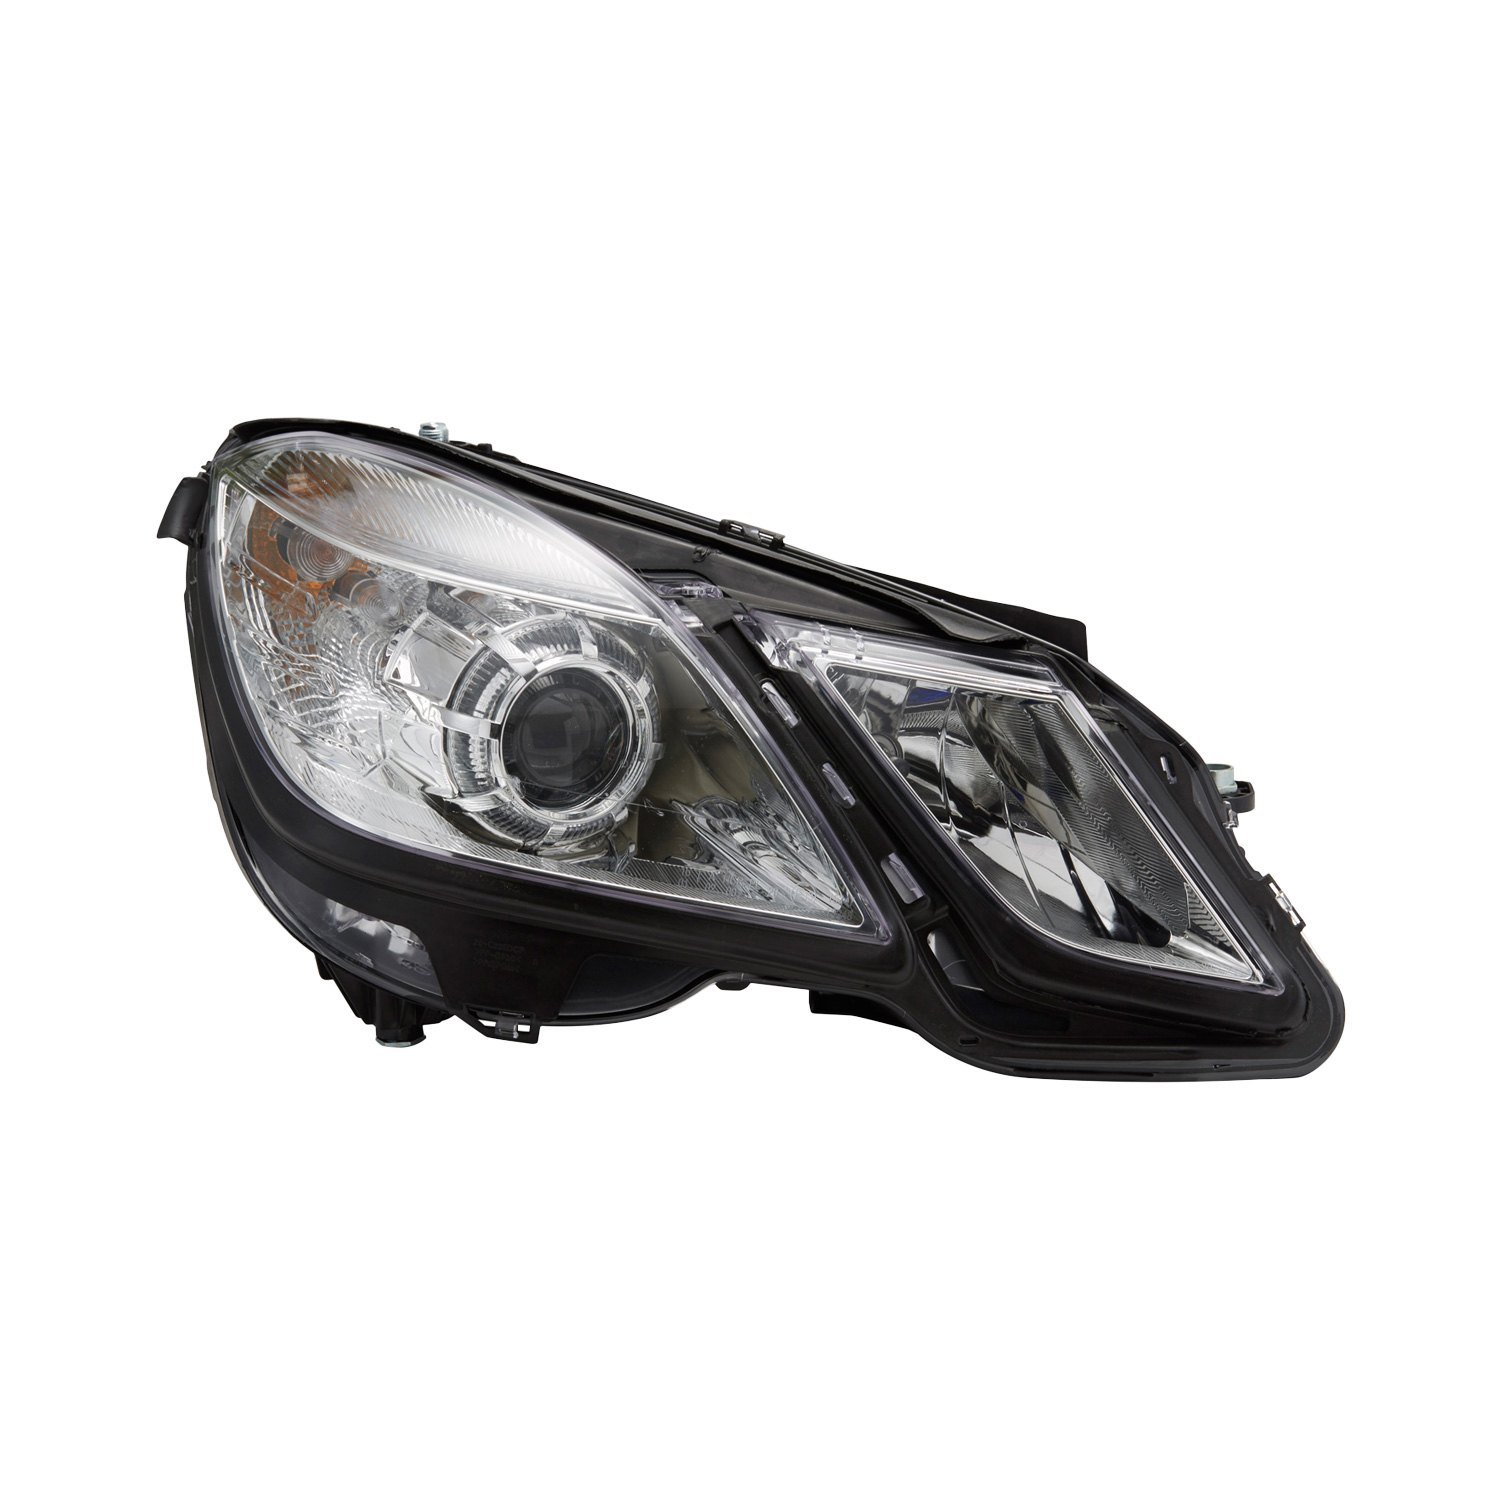 Tyc mercedes e class 2012 replacement headlight for Mercedes benz headlight replacement